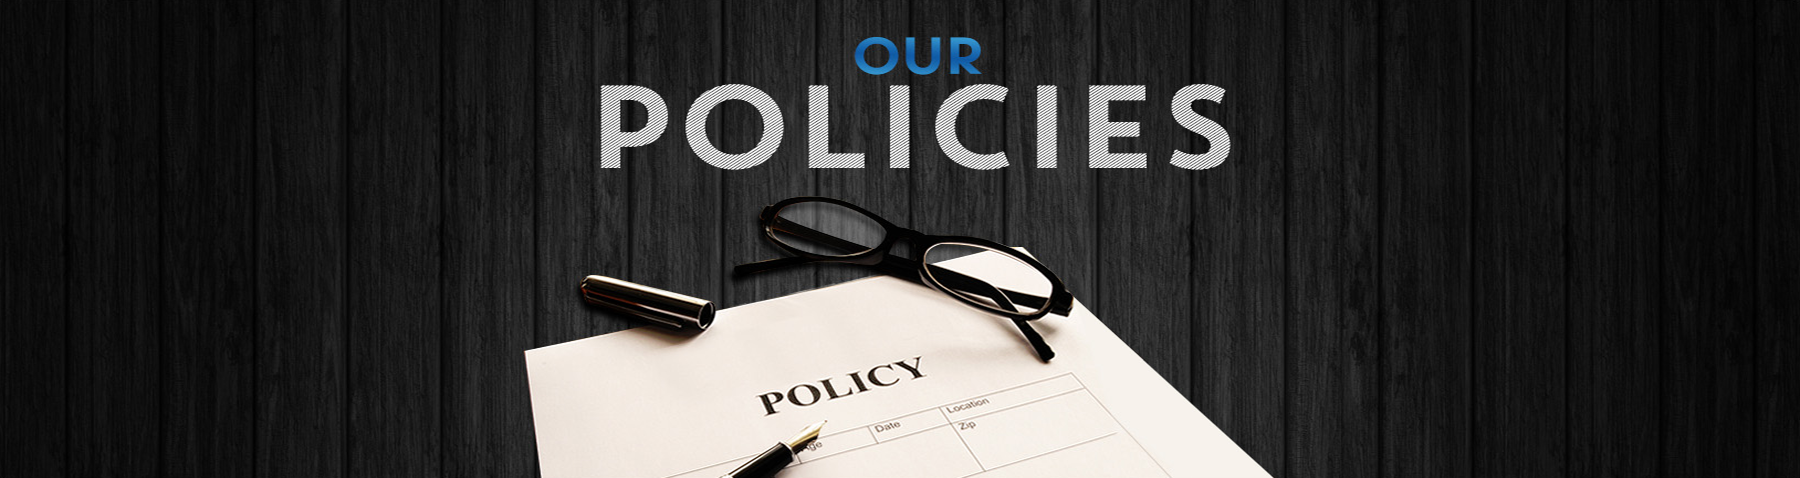 our_policy_banner